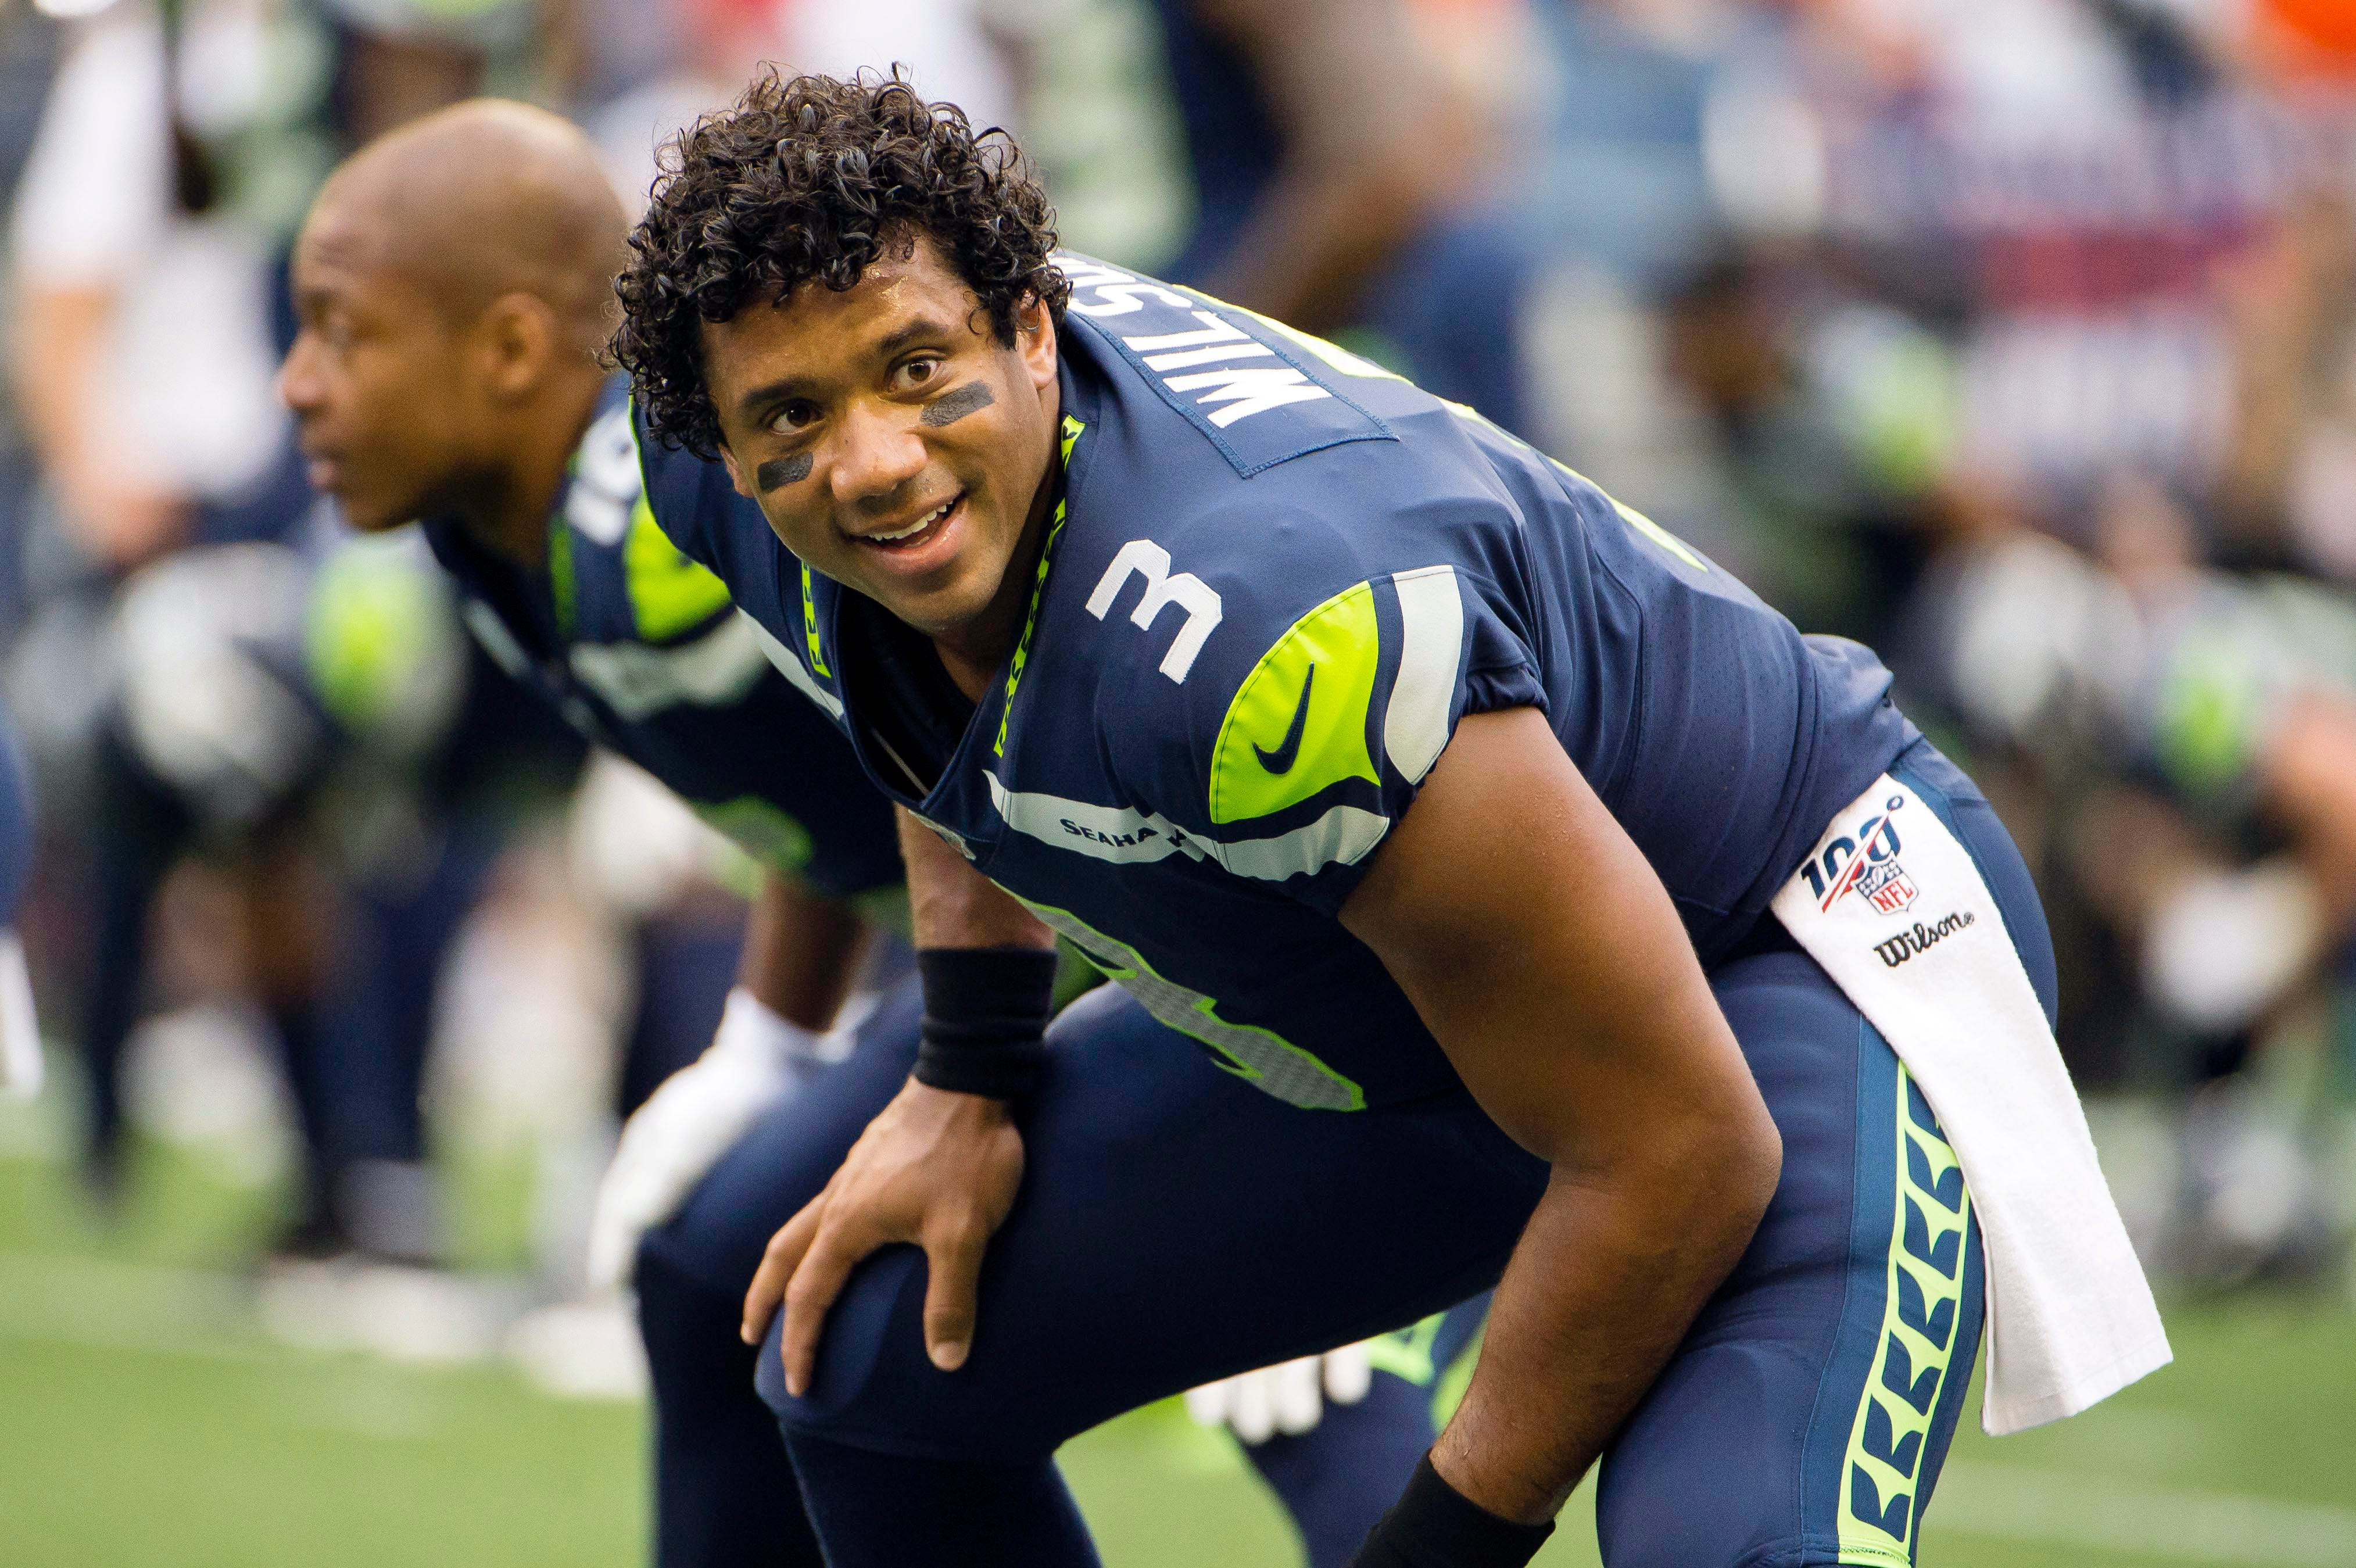 Opinion: Russell Wilson won't be limited to football, wants to 'inspire the world'